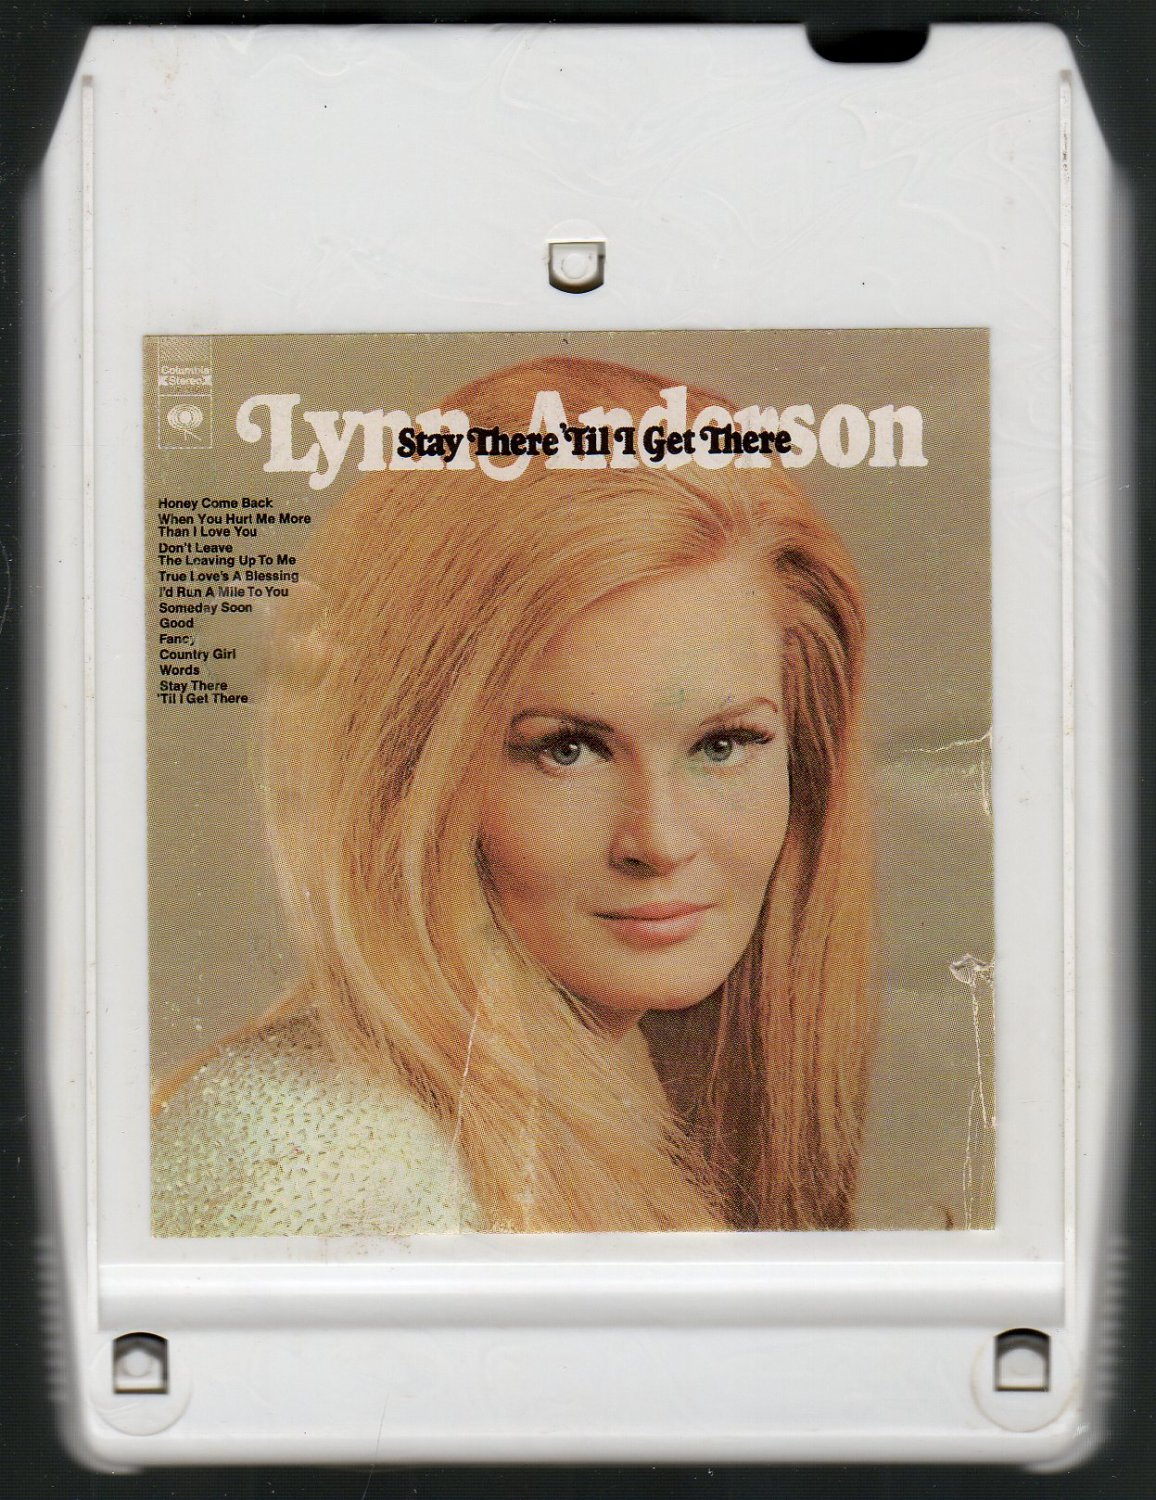 Lynn Anderson - Stay There Till I Get There 8-track tape